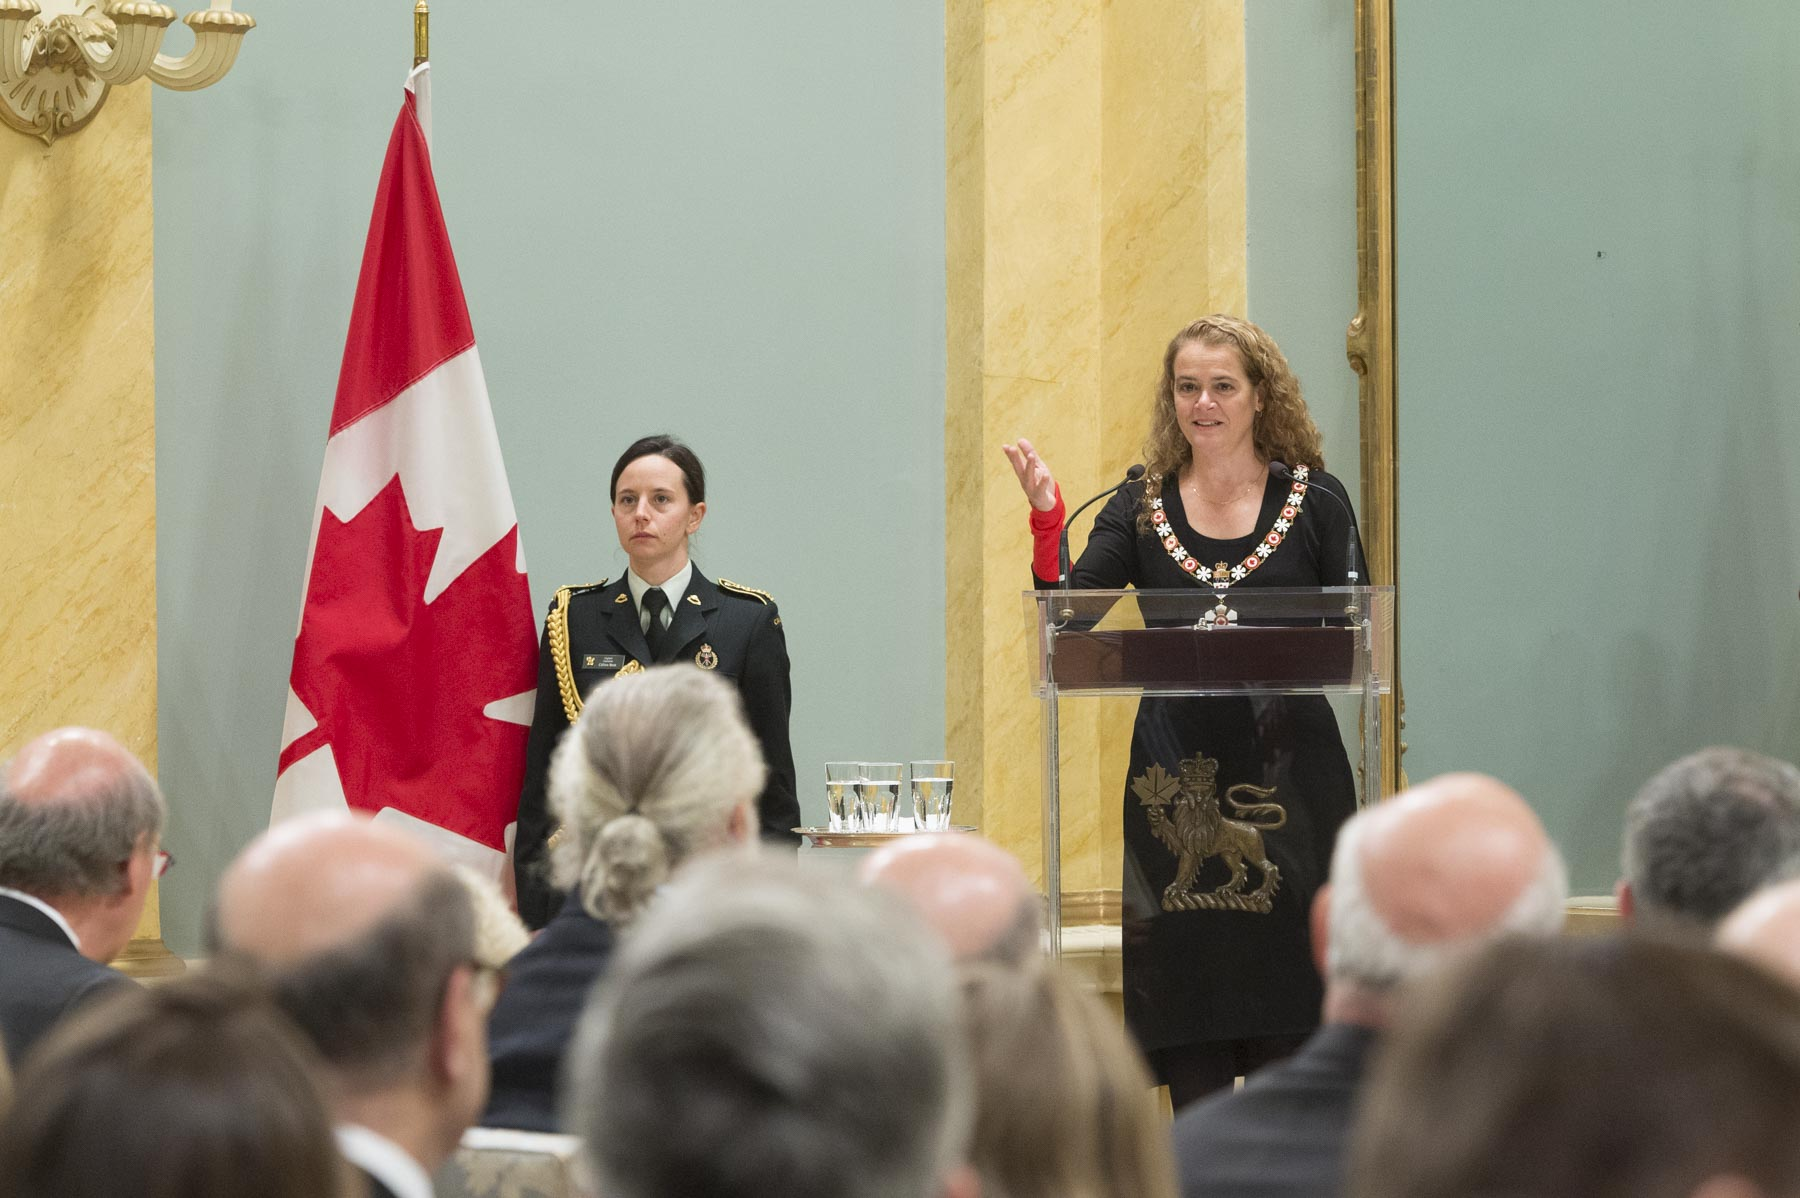 During her speech, the Governor General said that Order of Canada recipients believe in making a difference both in our country and around the world.